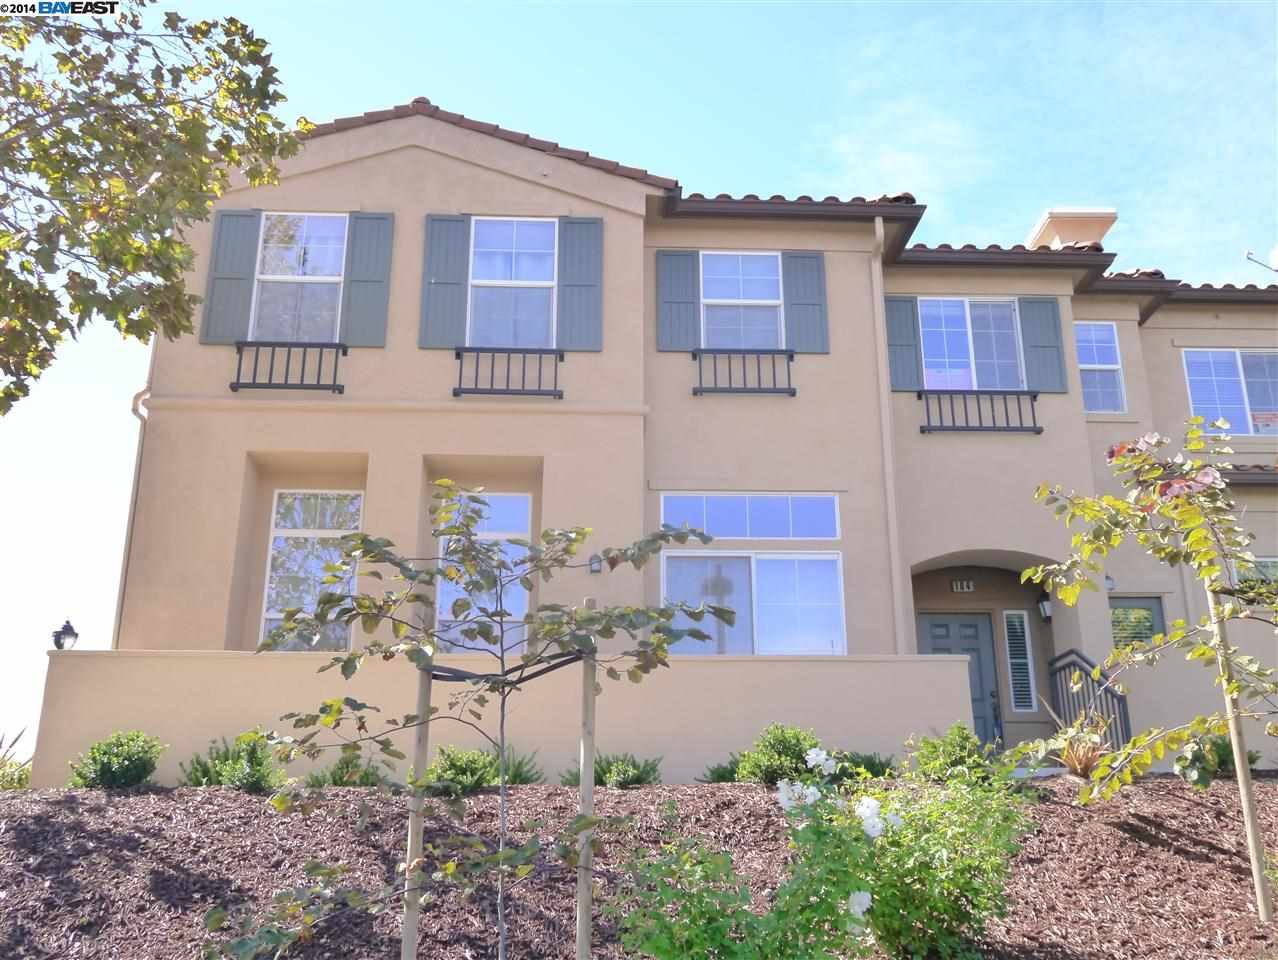 Condominium for Rent at 54 Meritage Common 54 Meritage Common Livermore, California 94551 United States